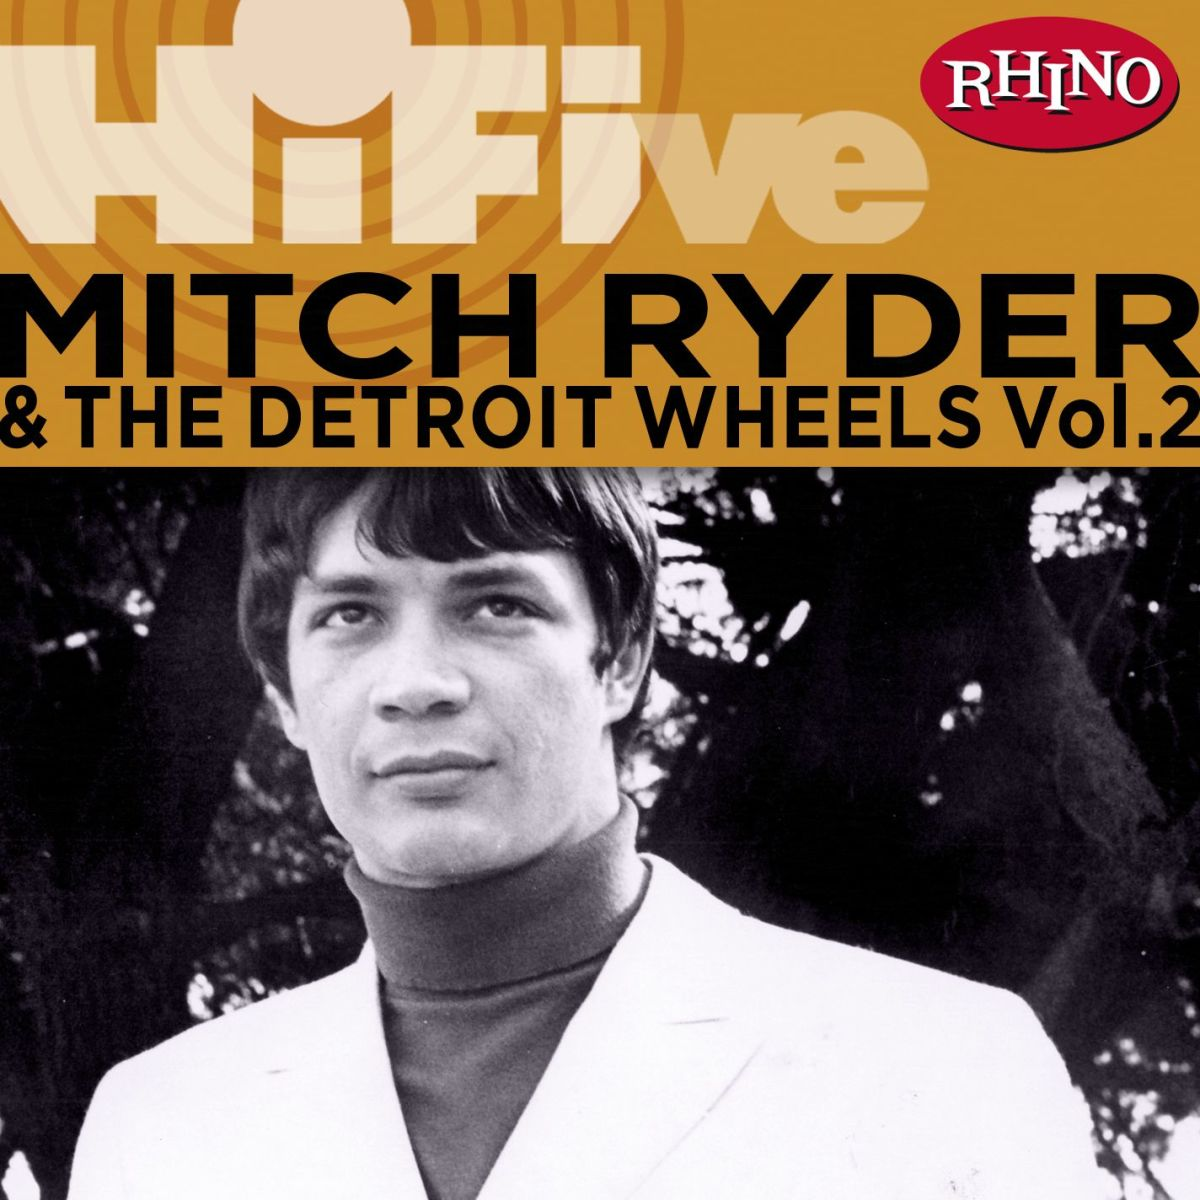 Mitch Ryder & The Detroit Wheels feature in Season 6